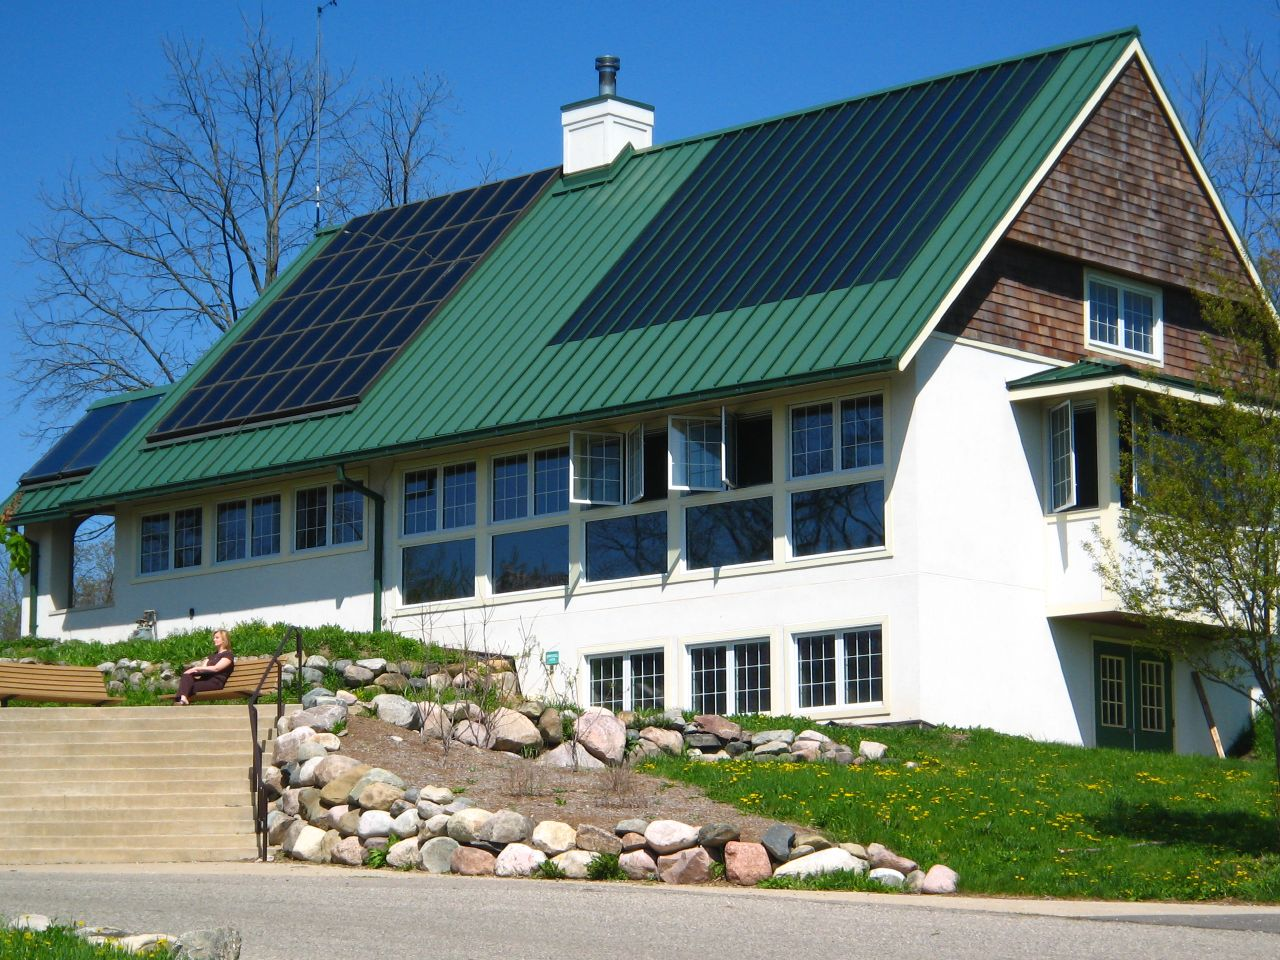 5 3 The Effect Of Solar Photovoltaic Panels On Residential